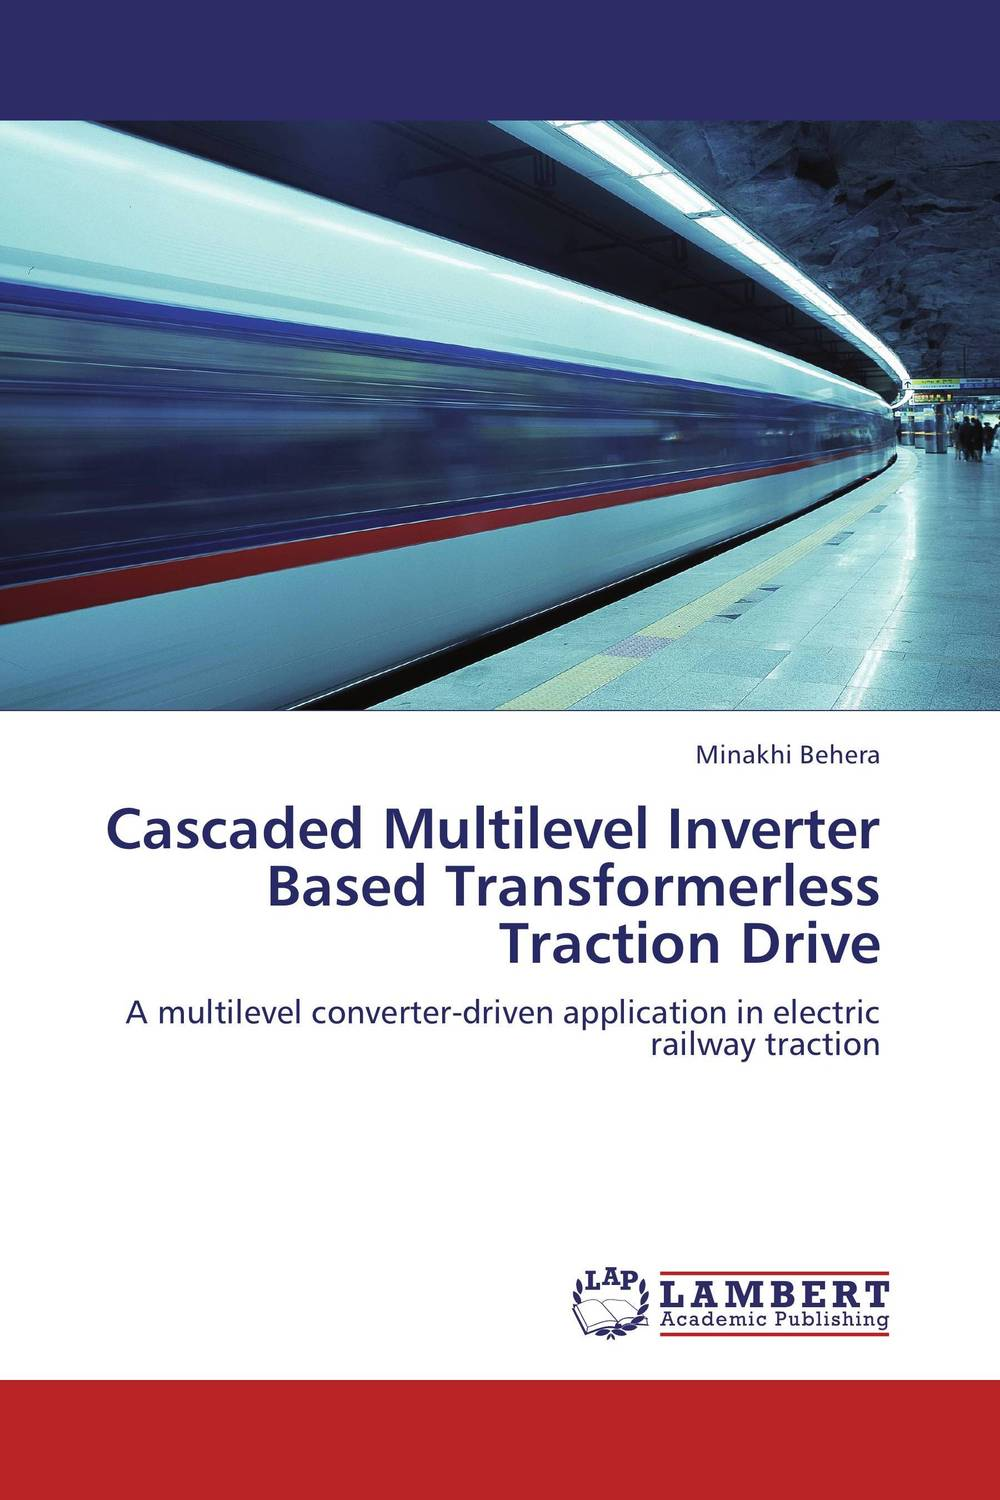 Cascaded Multilevel Inverter Based Transformerless Traction Drive